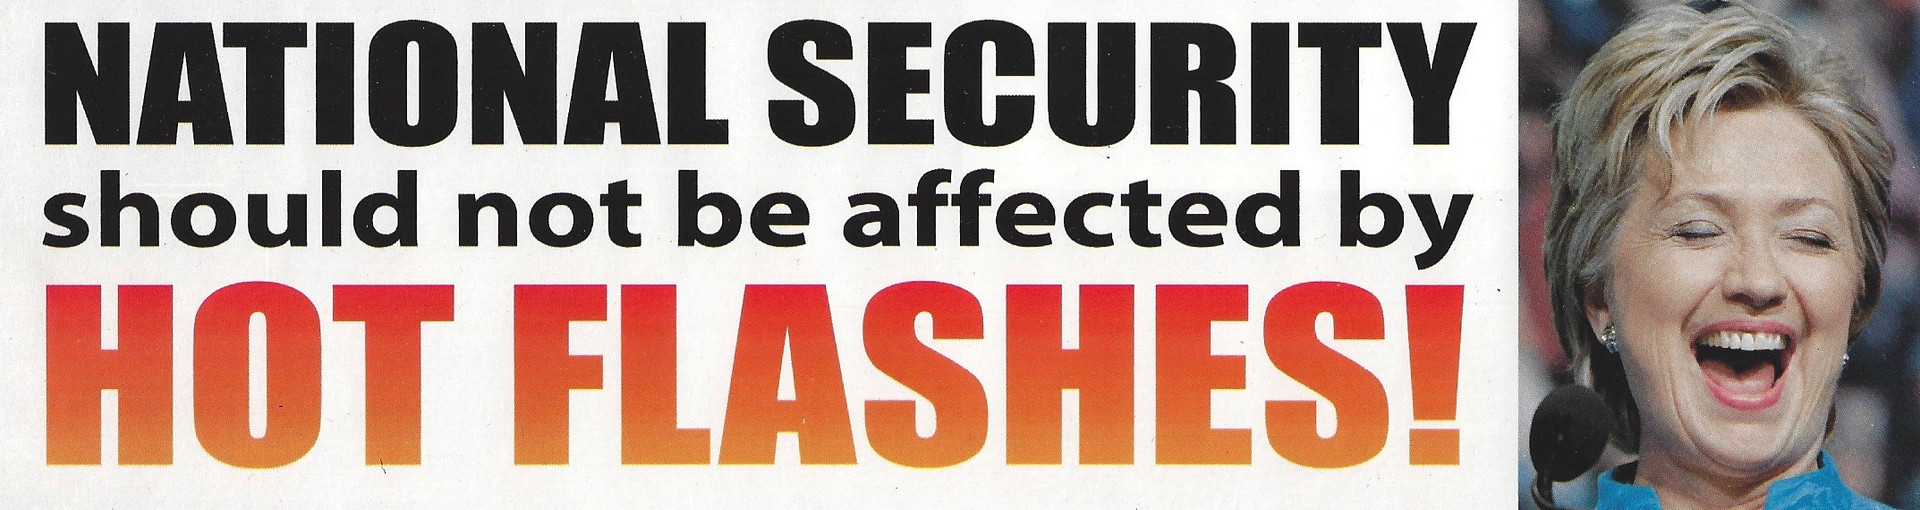 National Security Should Not be Affected by Hot Flashes! (Hillary)